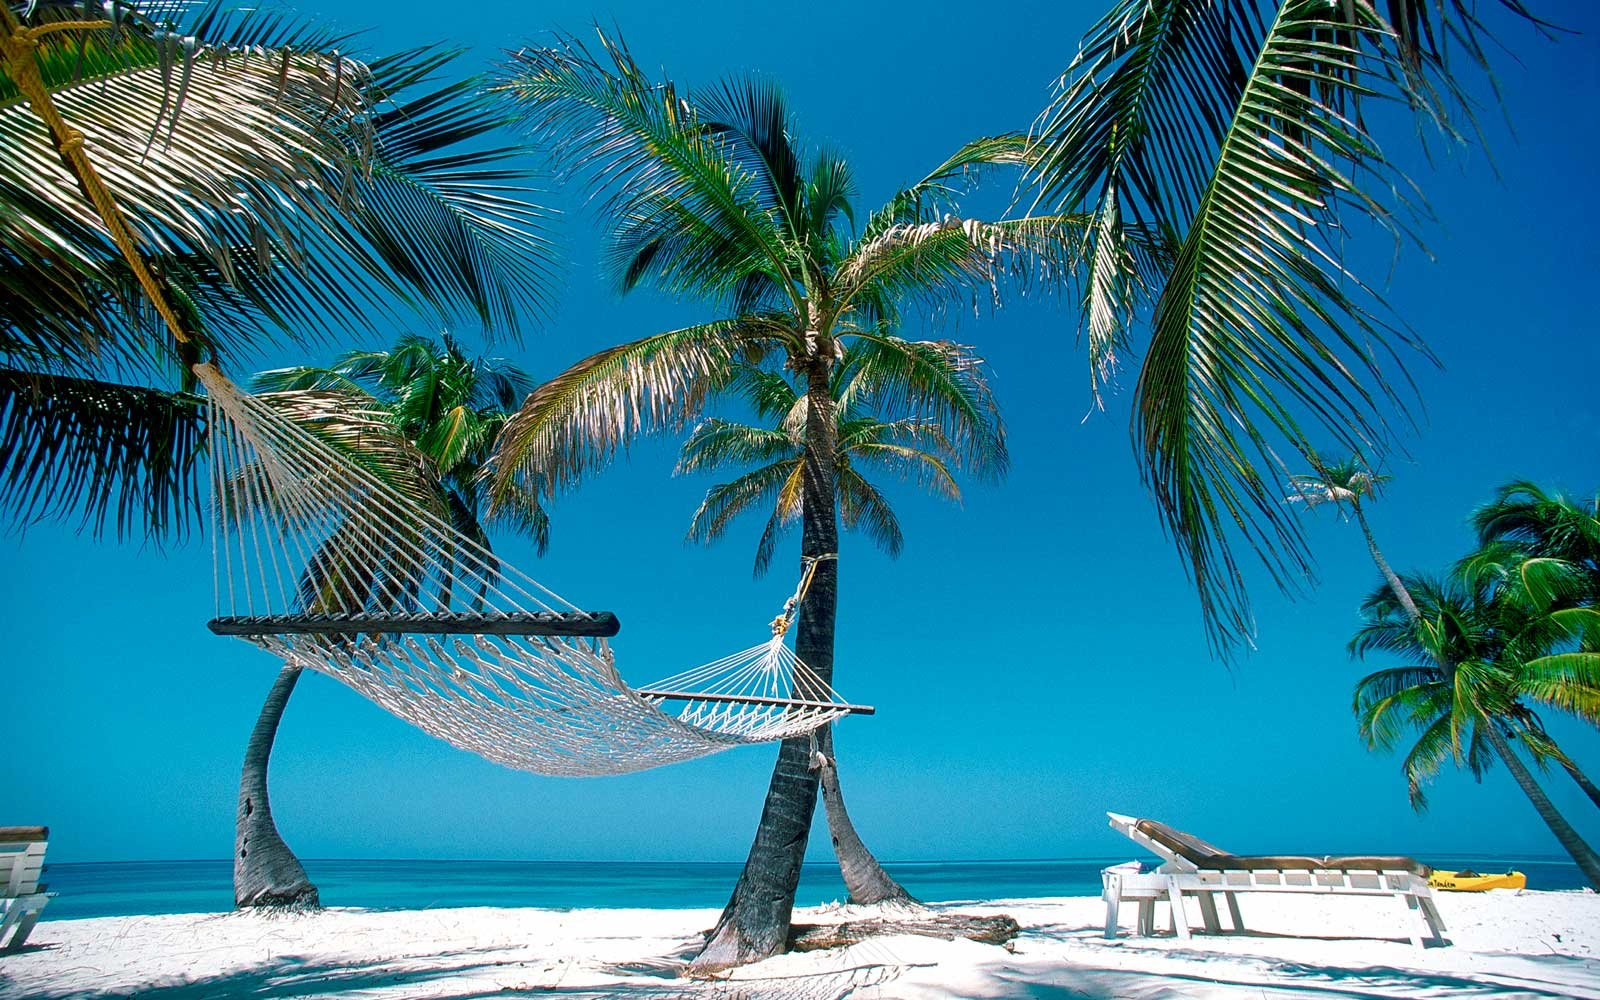 Hammock and Palm Trees, Belize Barrier Reef, Belize